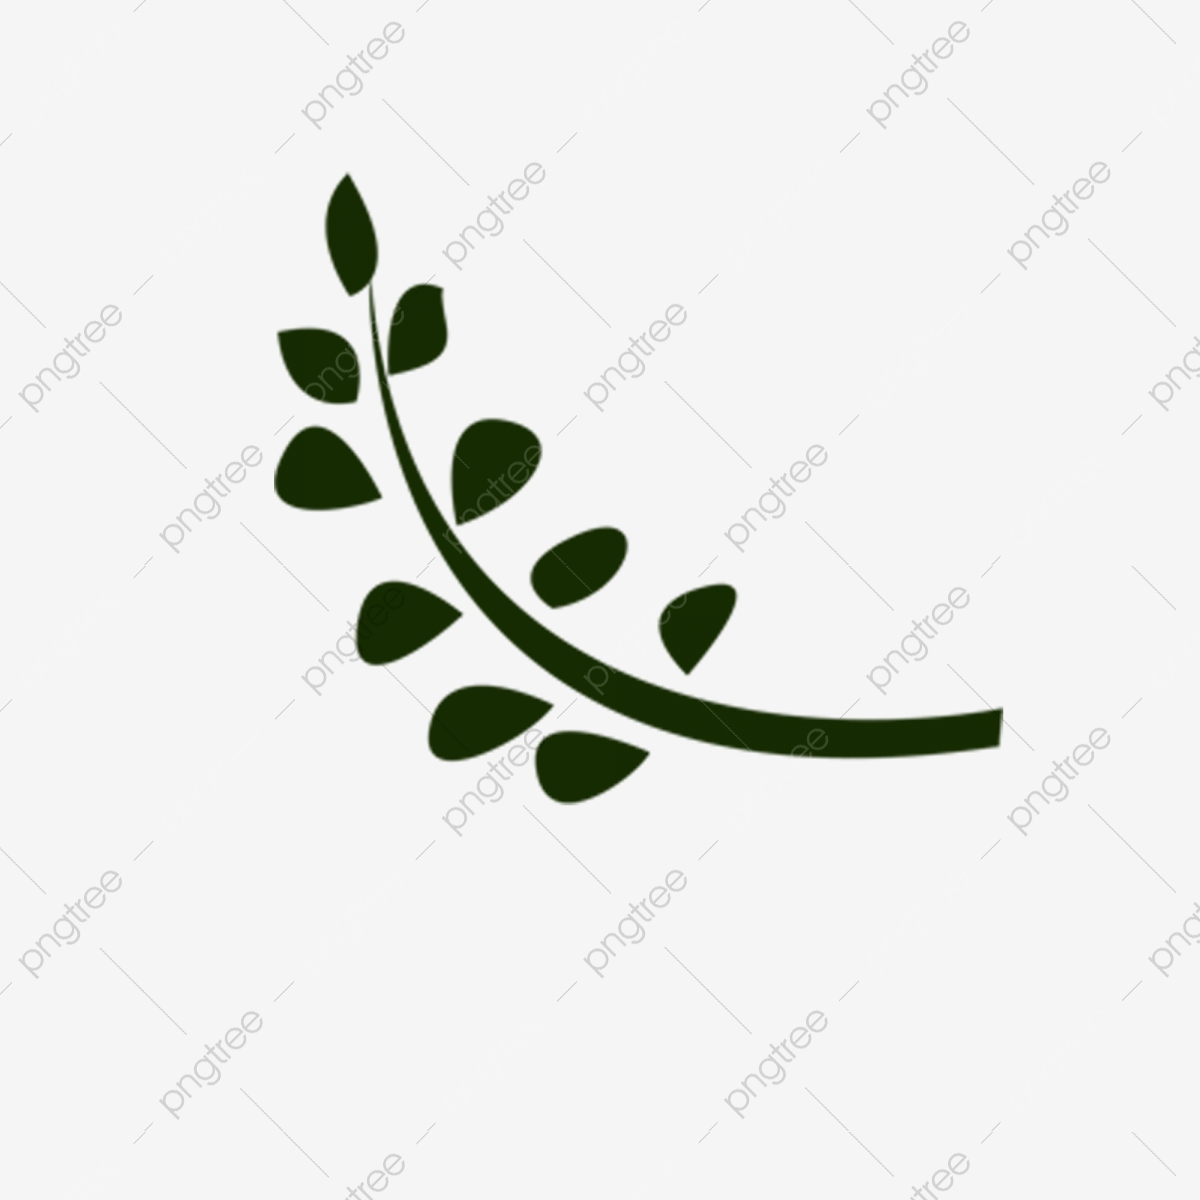 Cartoon Tree Branch Png Download Tree Shrew Branches Green Leaves Png Transparent Clipart Image And Psd File For Free Download All our images are transparent and free for personal use. https pngtree com freepng cartoon tree branch png download 4403170 html